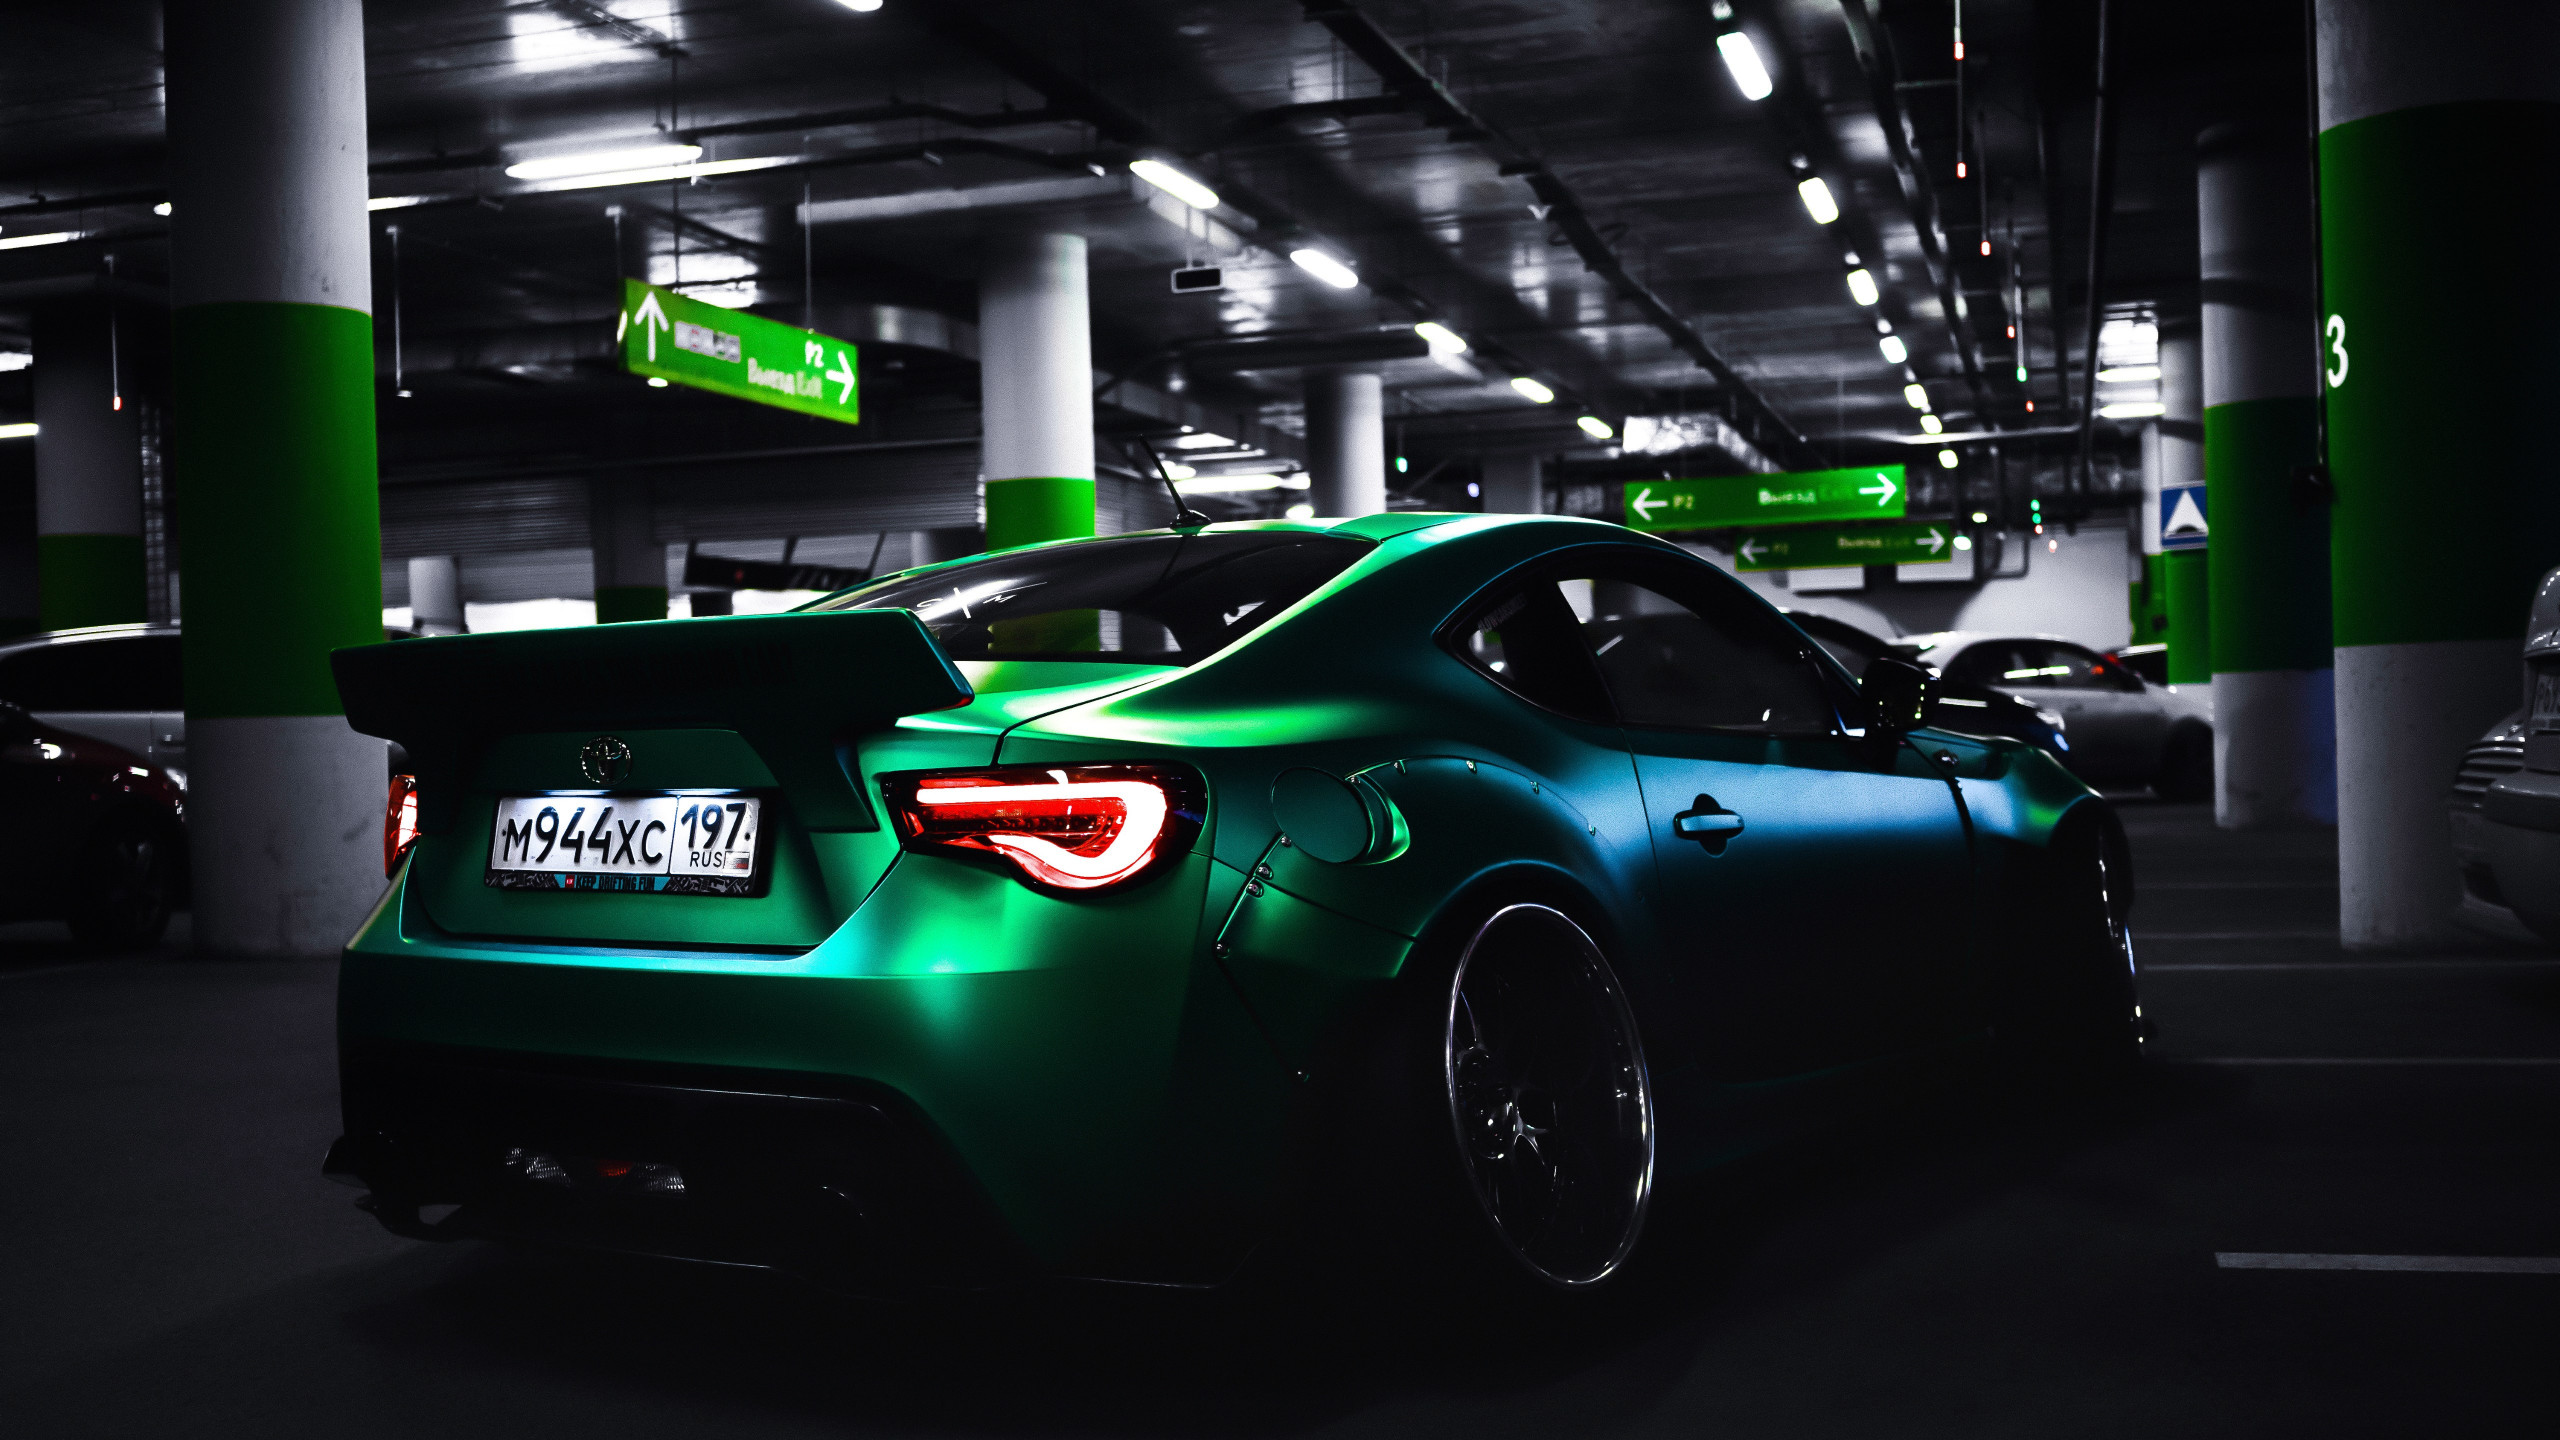 Toyota sports car wallpaper 2560x1440